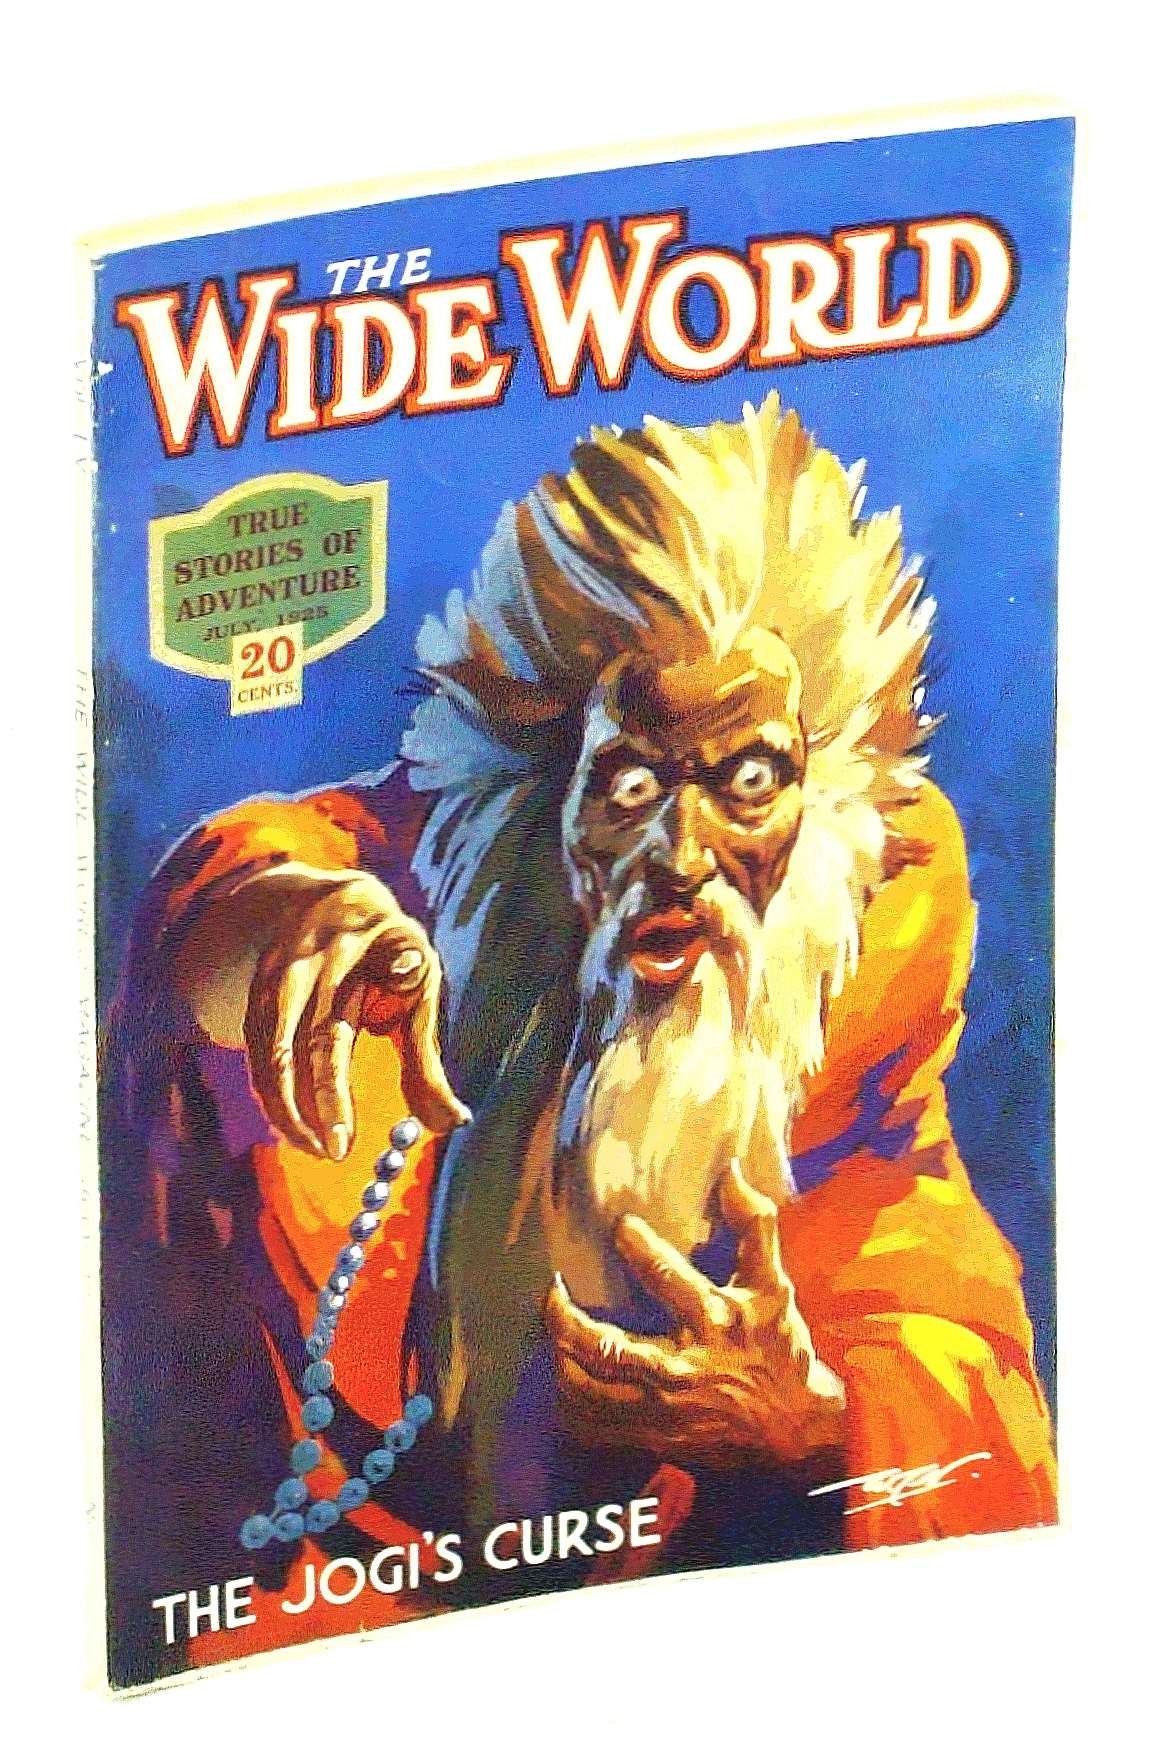 Image for The Wide World  Magazine, True Stories of Adventure, July, 1925, Vol LV, No. 327: The Jogi's Curse / Two Years in Borneo / Forbidden Nepal